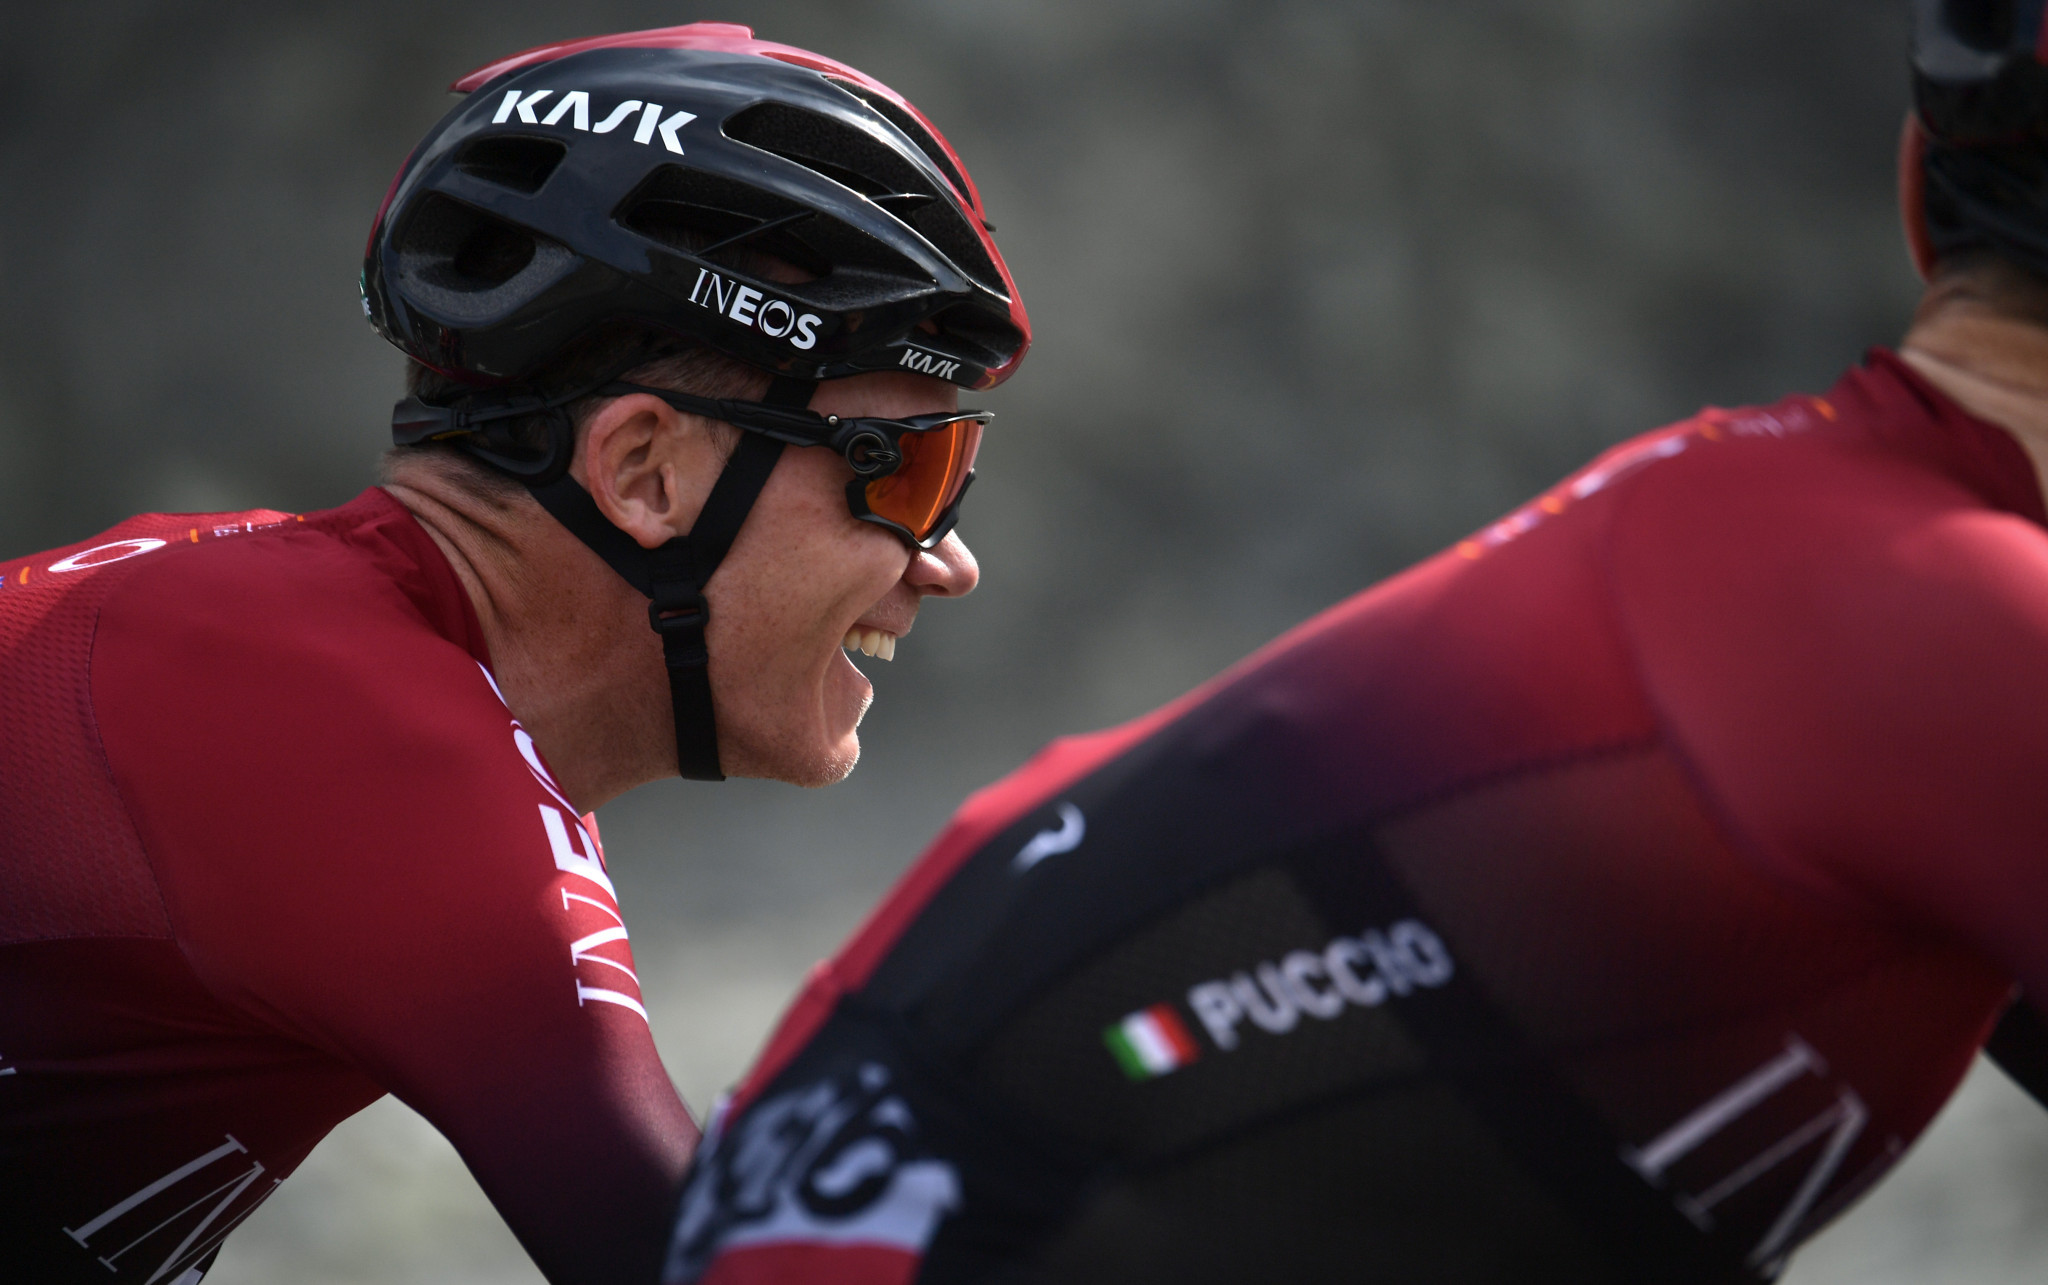 Israel Start-Up Nation confirm Froome signing with Briton leaving Ineos